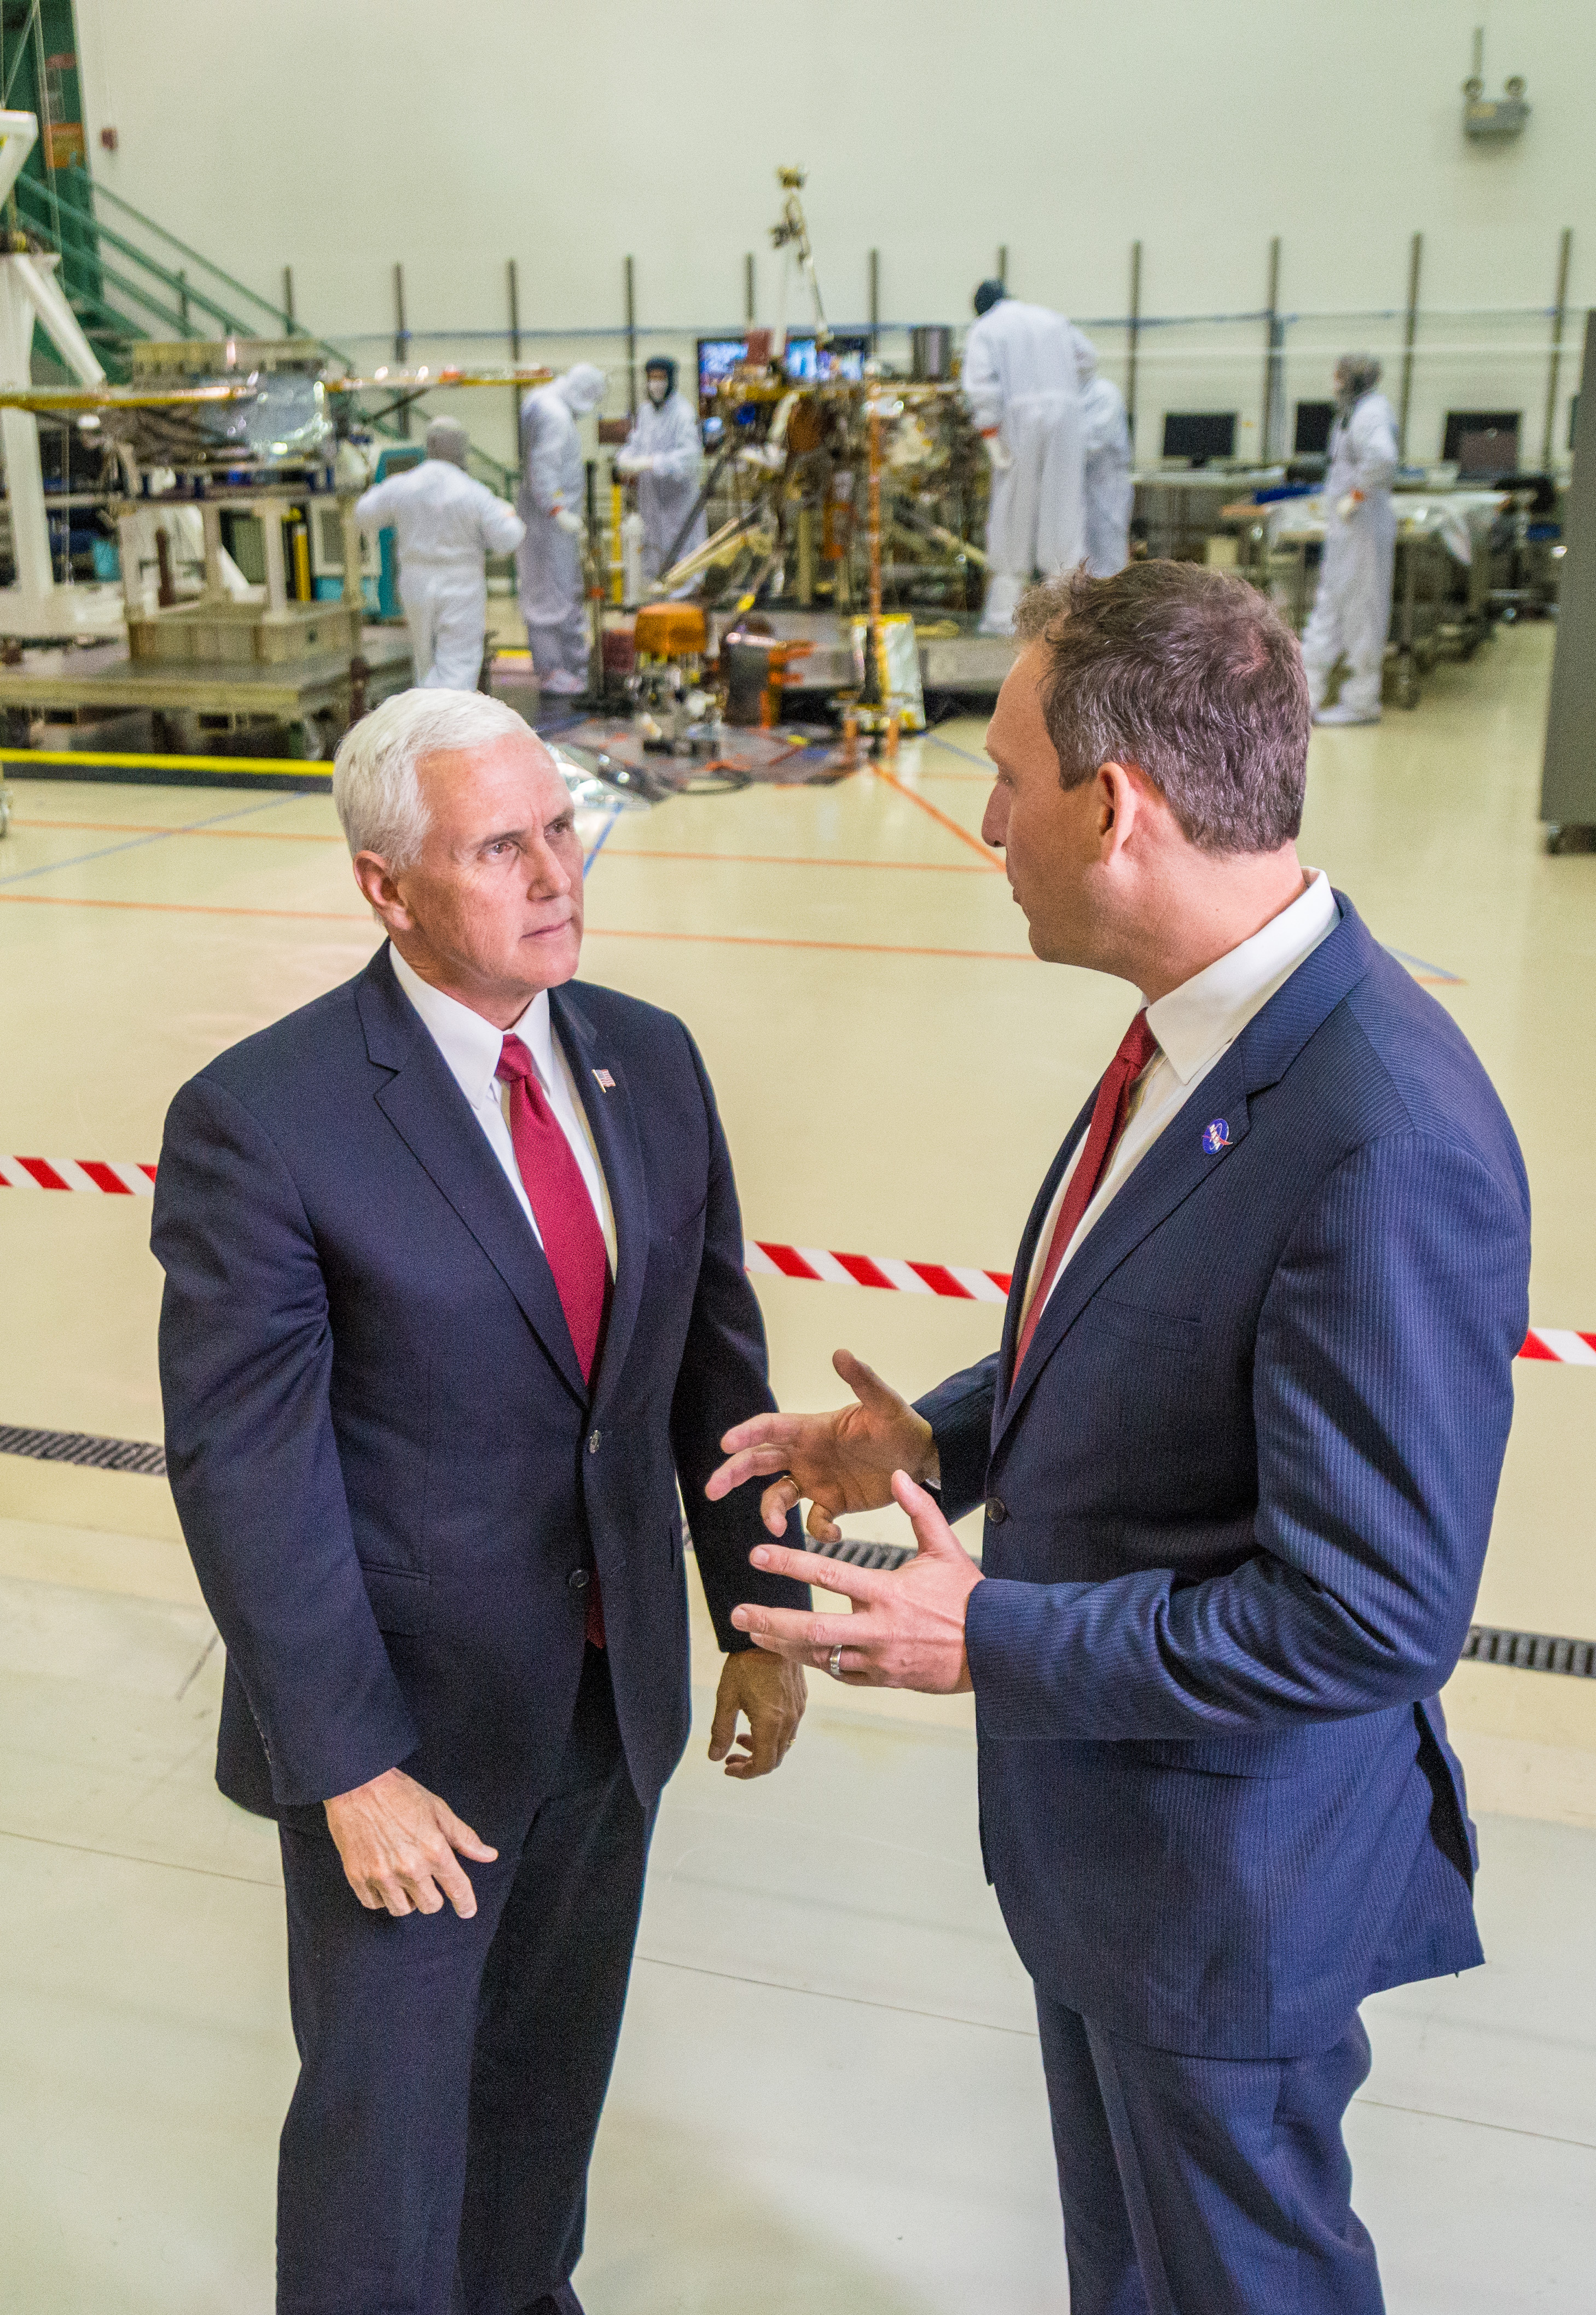 Vice President Mike Pence, left, speaks with Thomas Zurbuchen, NASA's associate administrator for the Science Mission Directorate, right, in a clean room facility near Denver, Colorado, where Lockheed Martin Space Systems is assembling and testing InSight, NASA's next spacecraft to Mars.